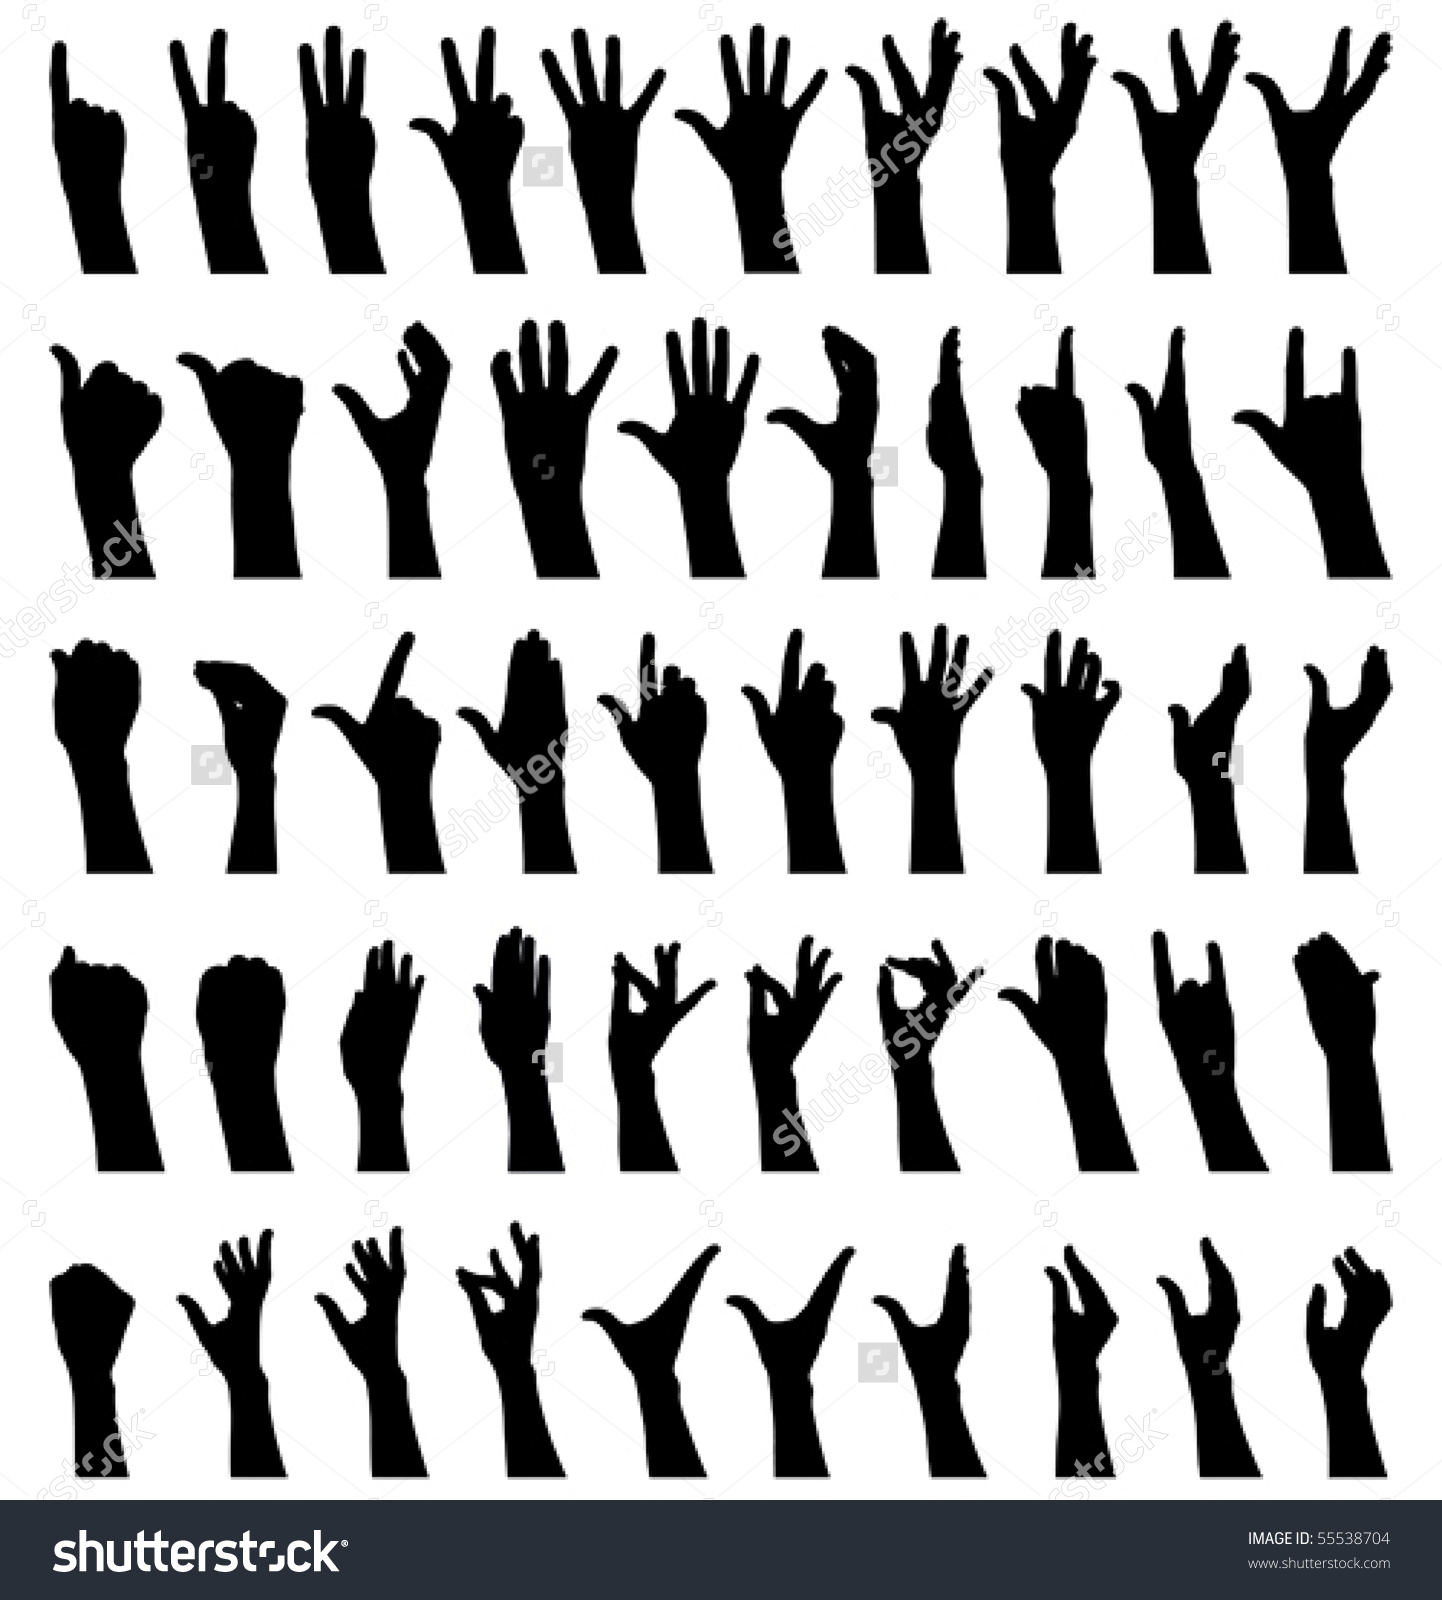 Hand Gesture clipart female Silhouette (47+) collection Clipart female